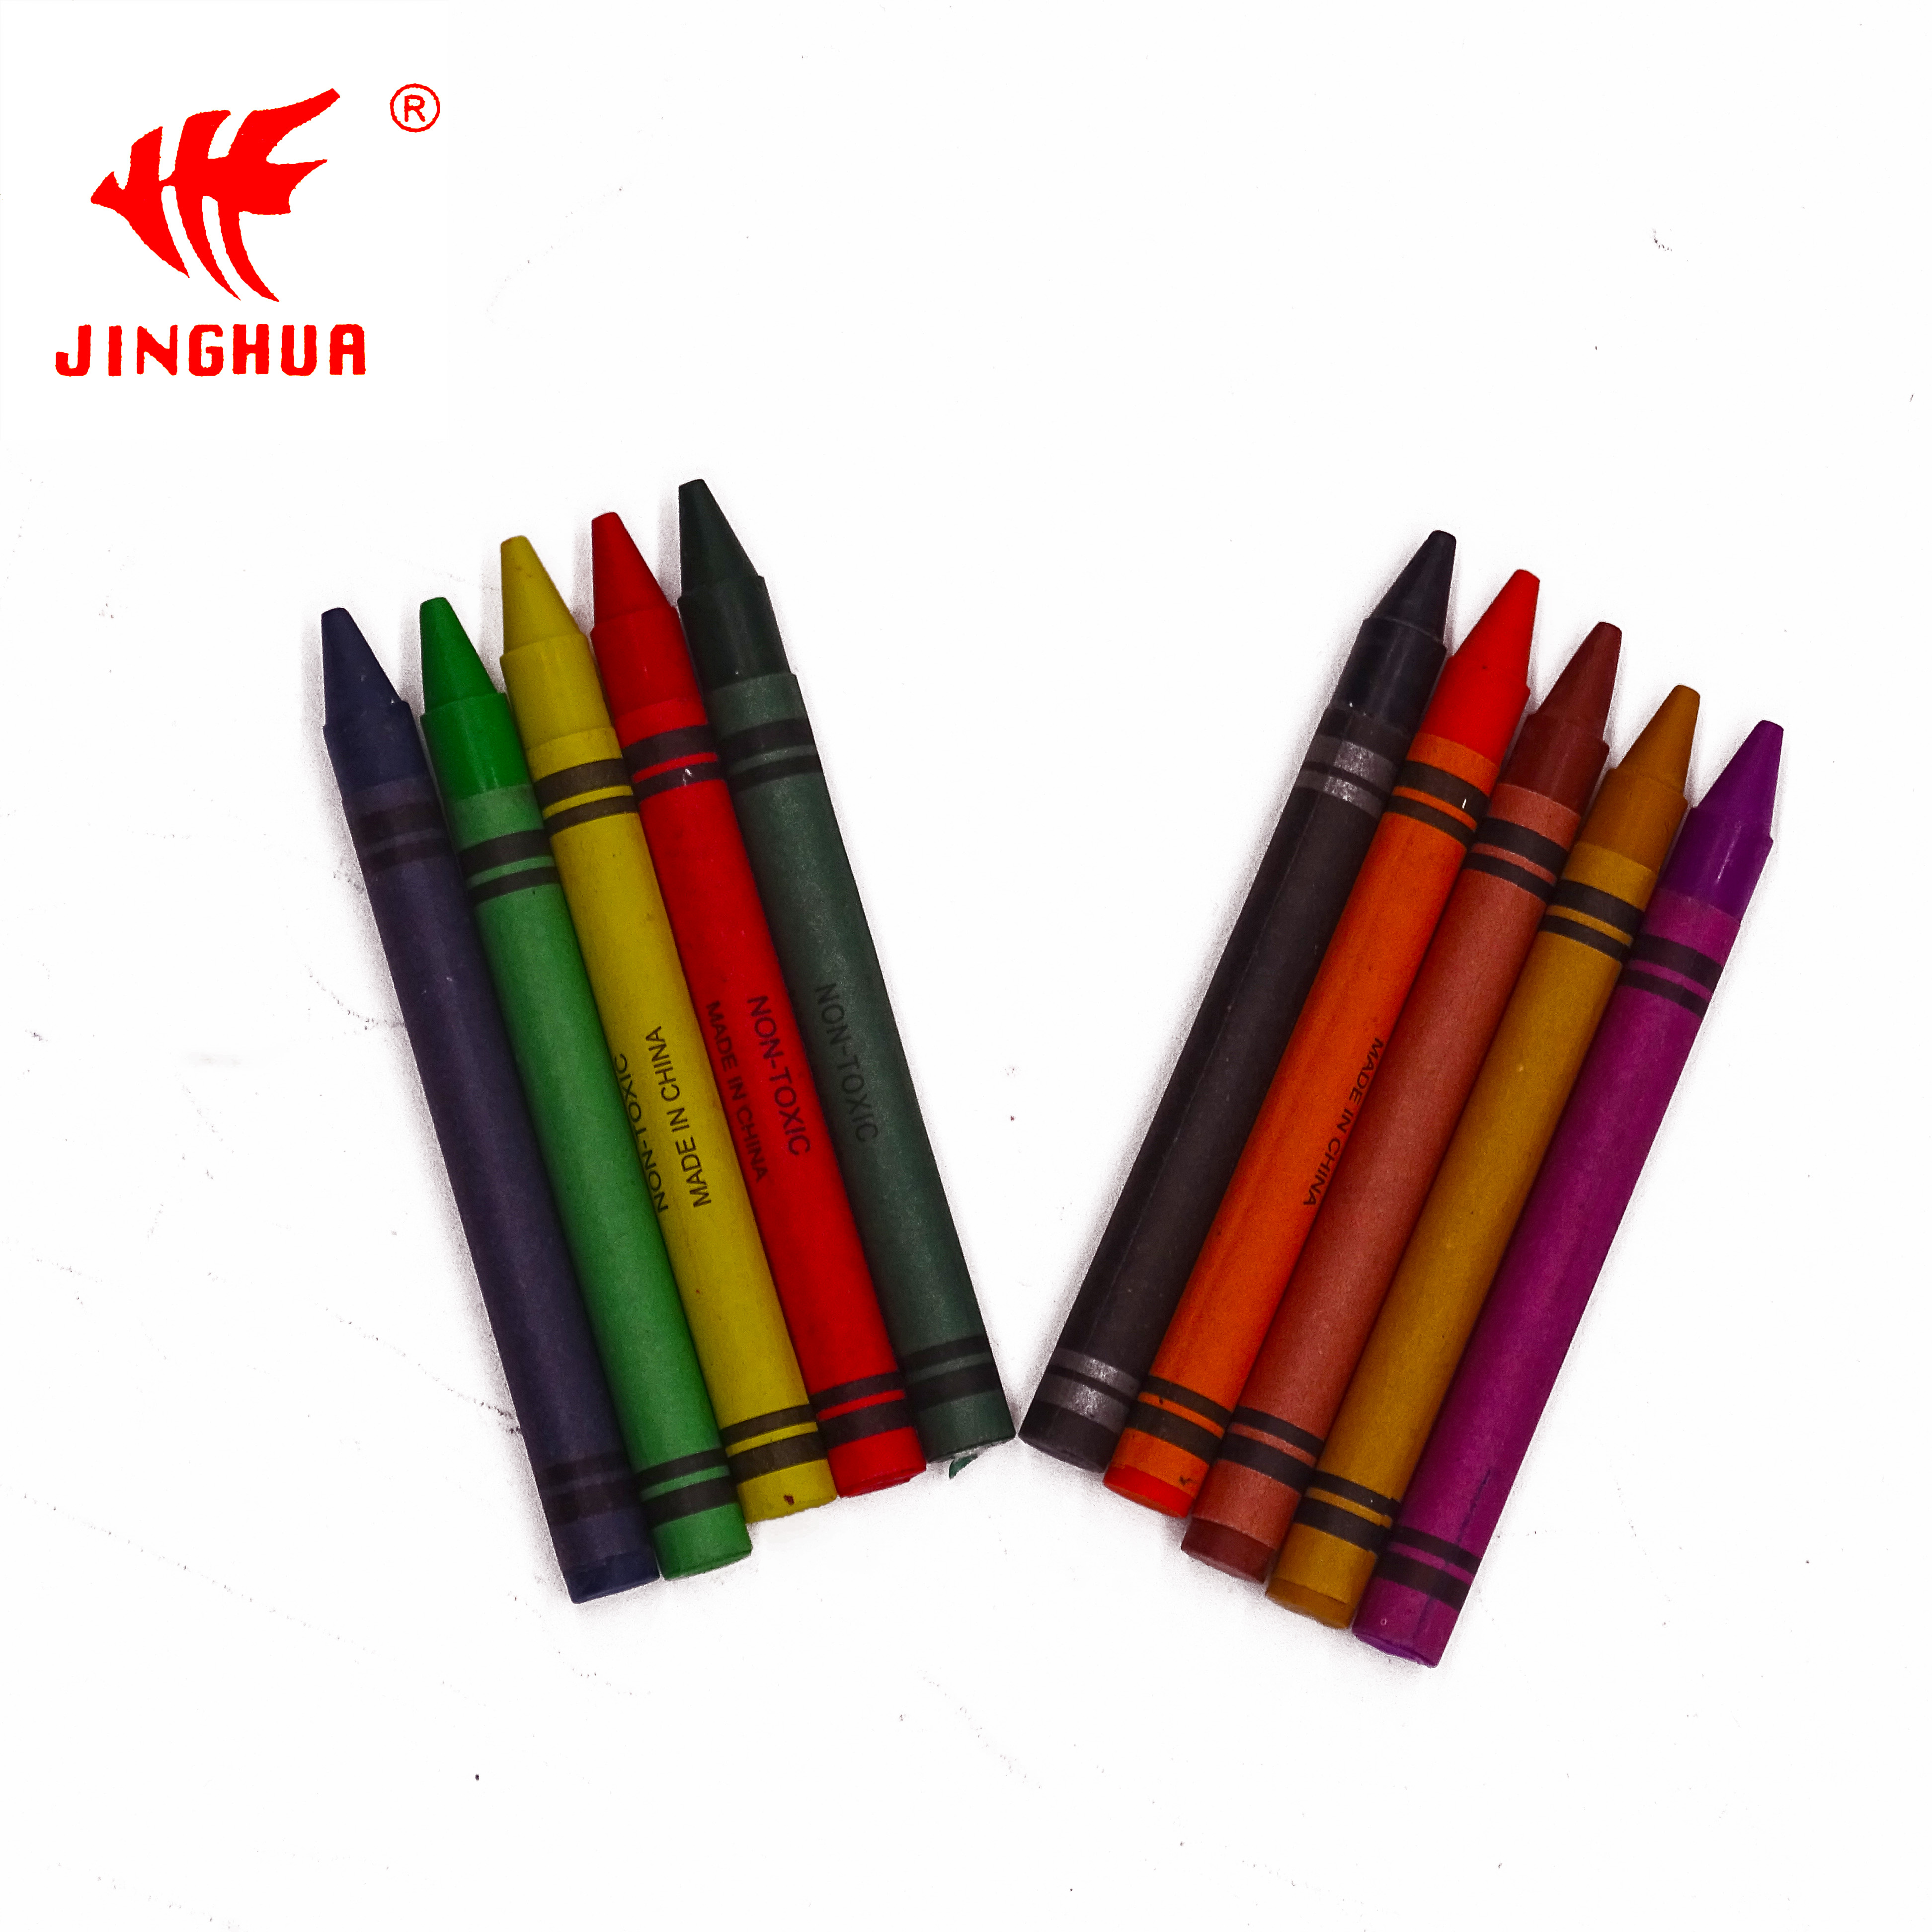 wholesale crayola crayons wholesale crayola crayons suppliers and